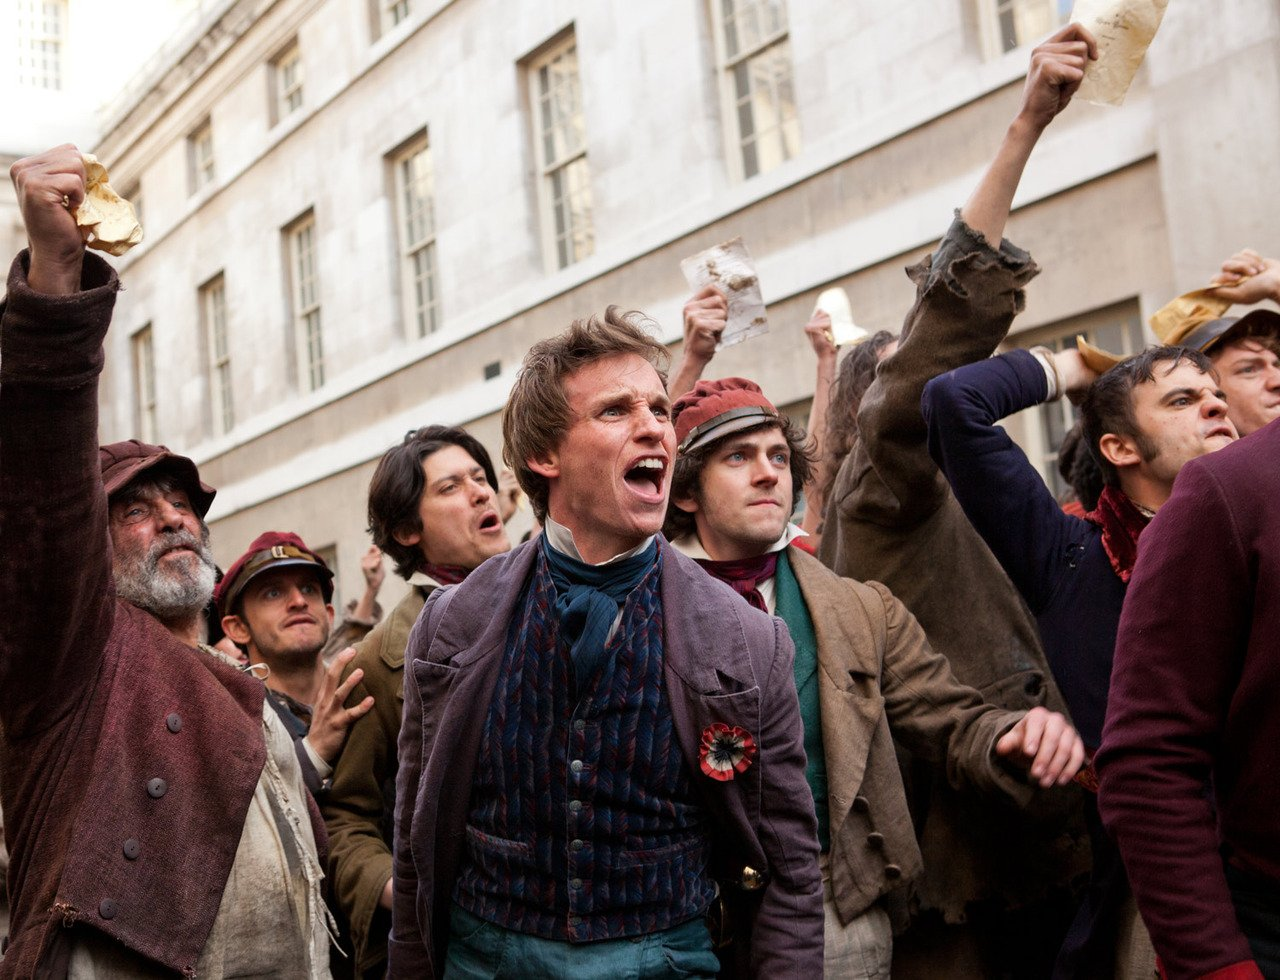 lm6 25 Things You Didn't Know About Les Misérables (2012)